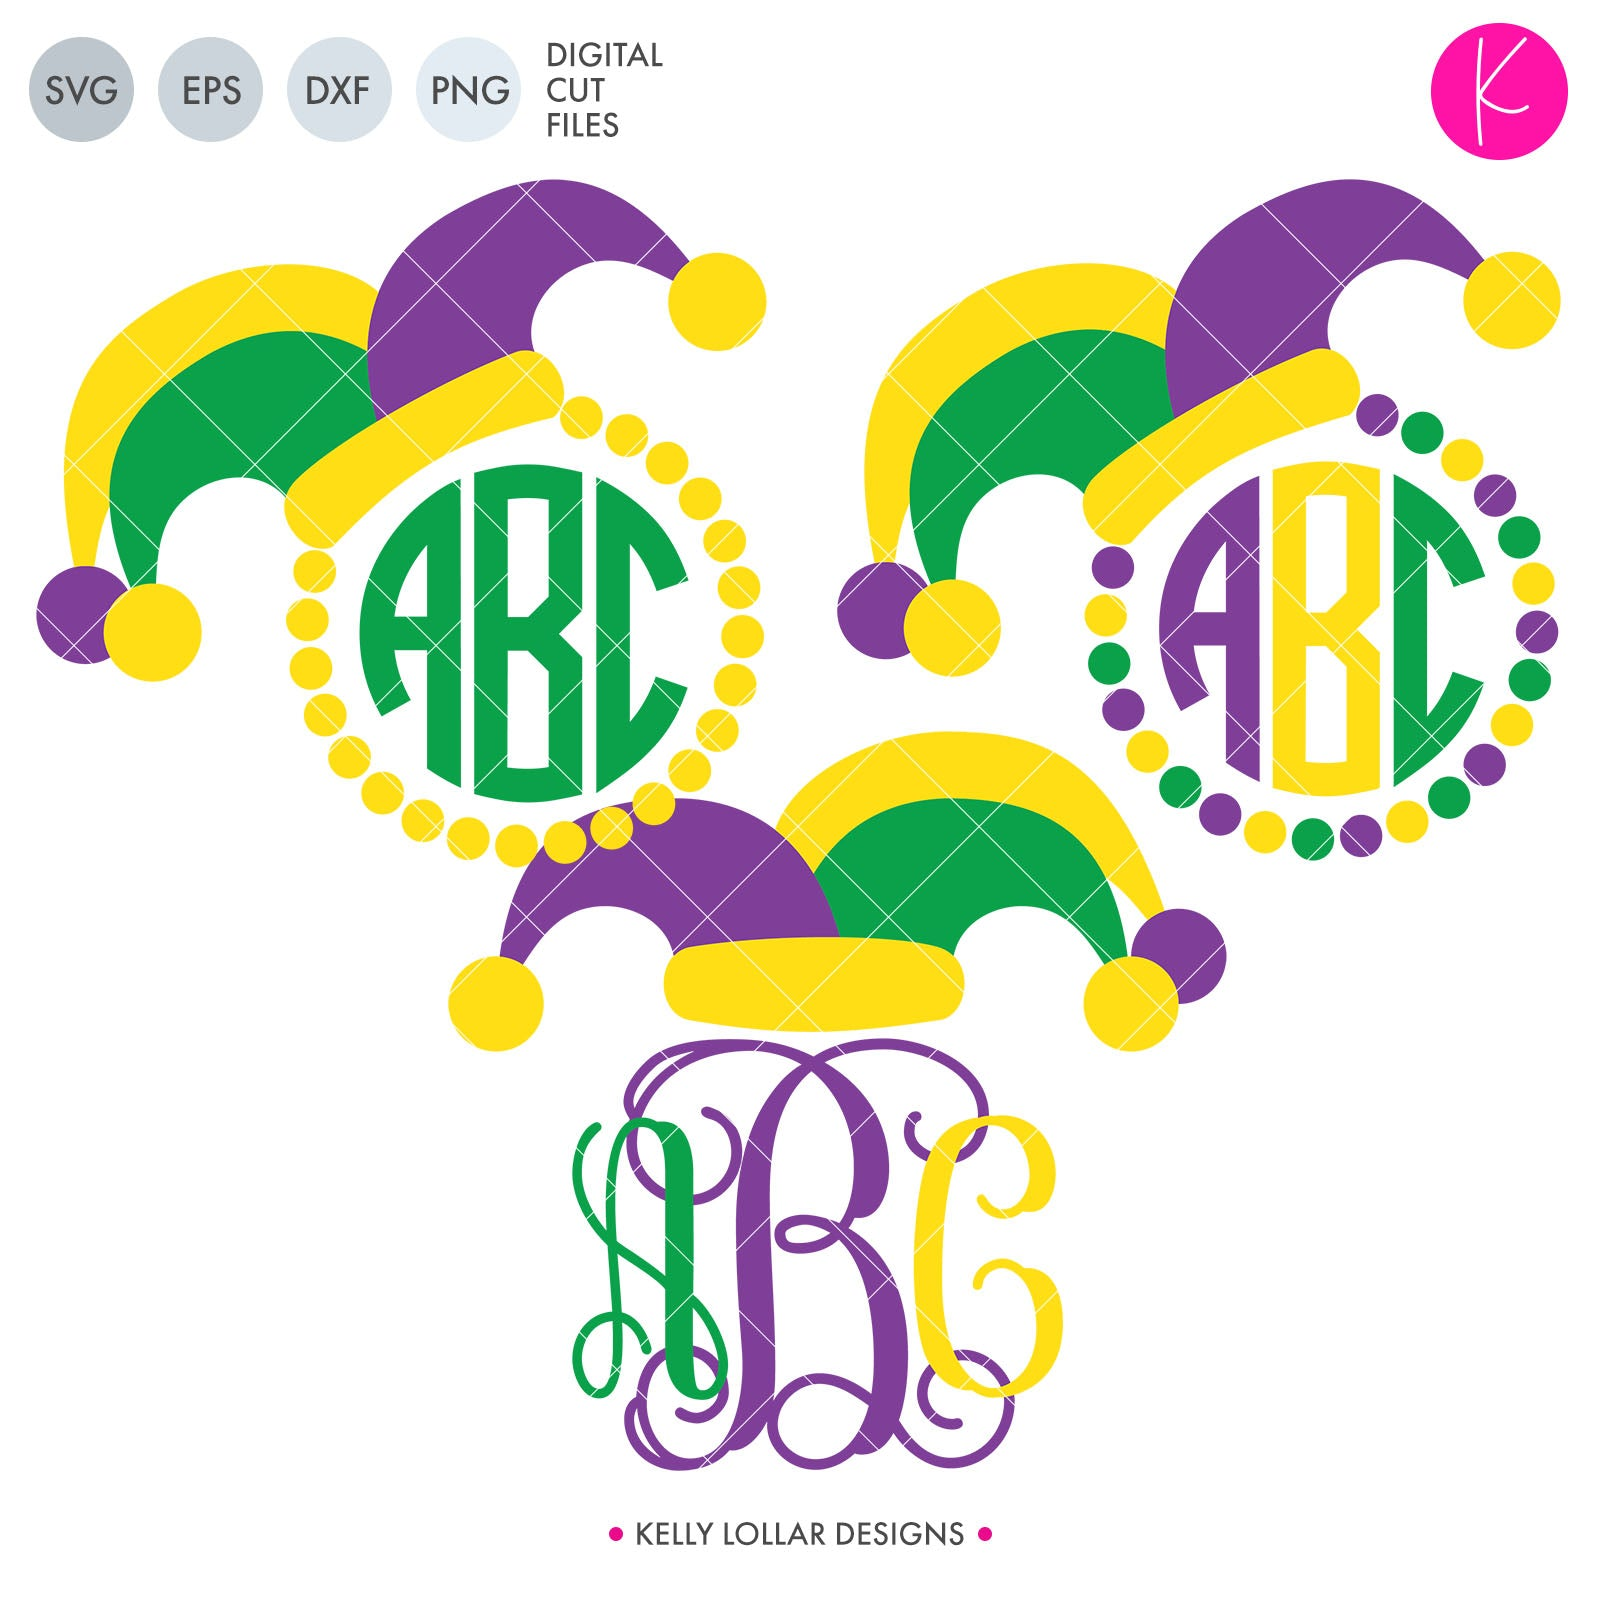 Seasonal Svg Dxf Eps Png Cut Files Kelly Lollar Designs Tagged Vine